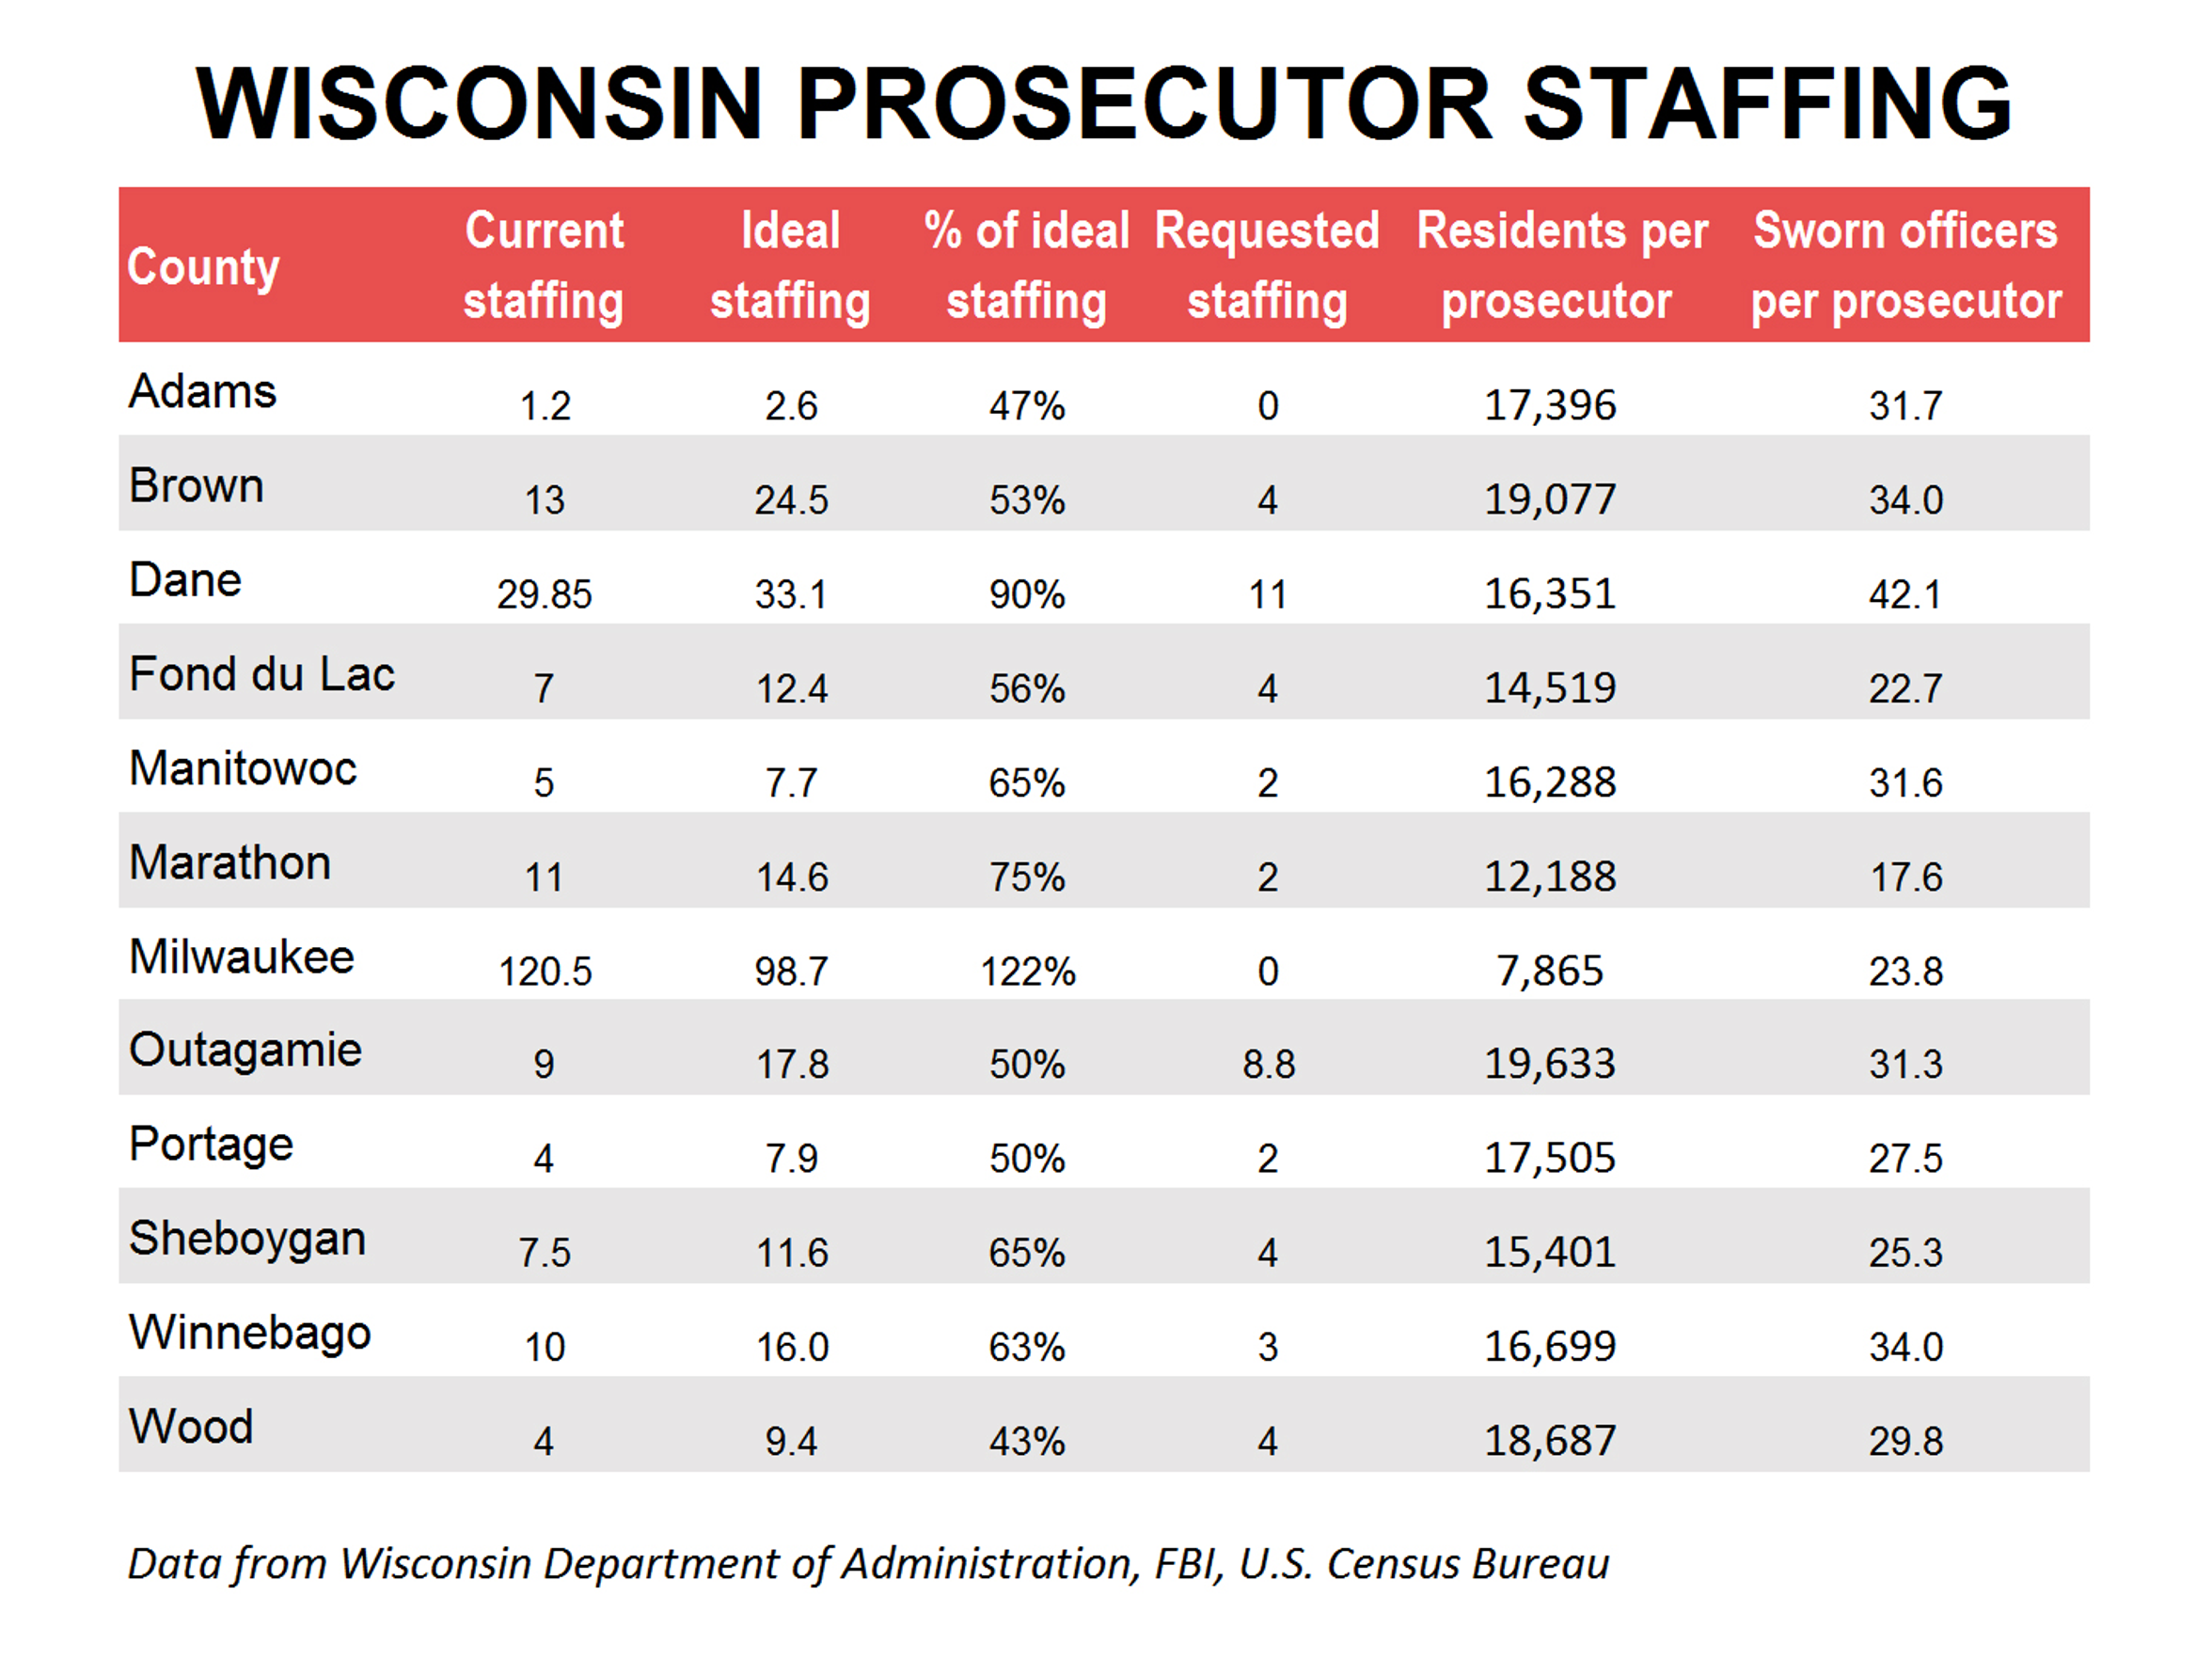 In most cases throughout Wisconsin counties, the number of prosecutors on staff is below the ideal.